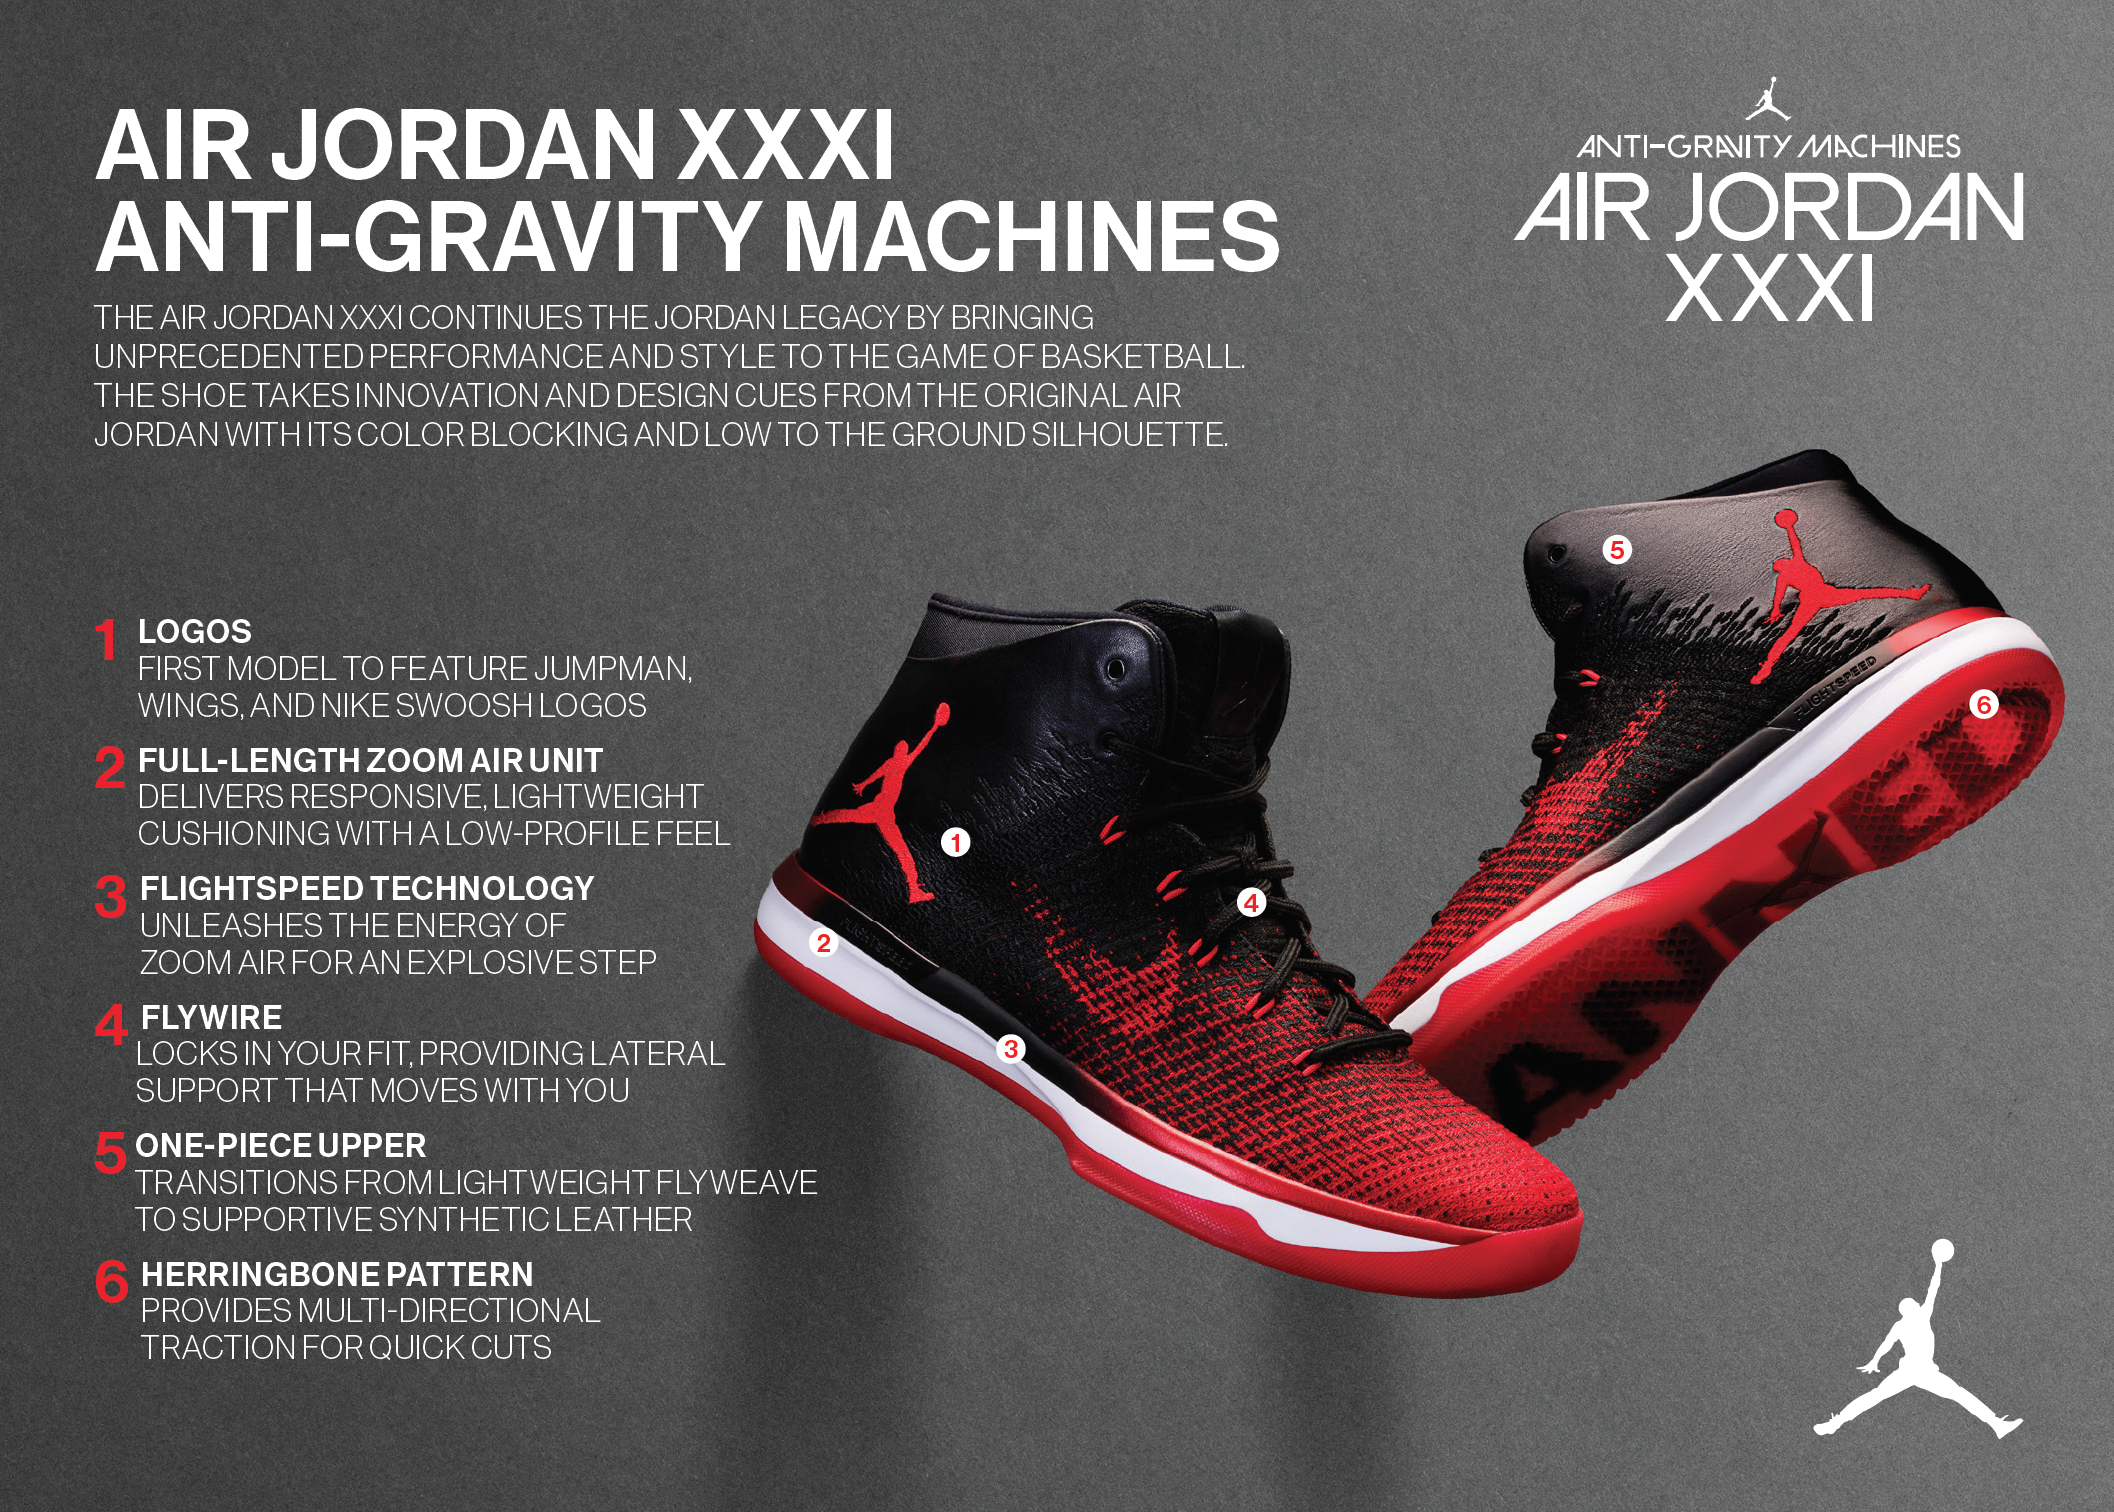 62d2dfa736dc The next chapter of the Air Jordan line is now here. Tonight at a special  event in Las Vegas